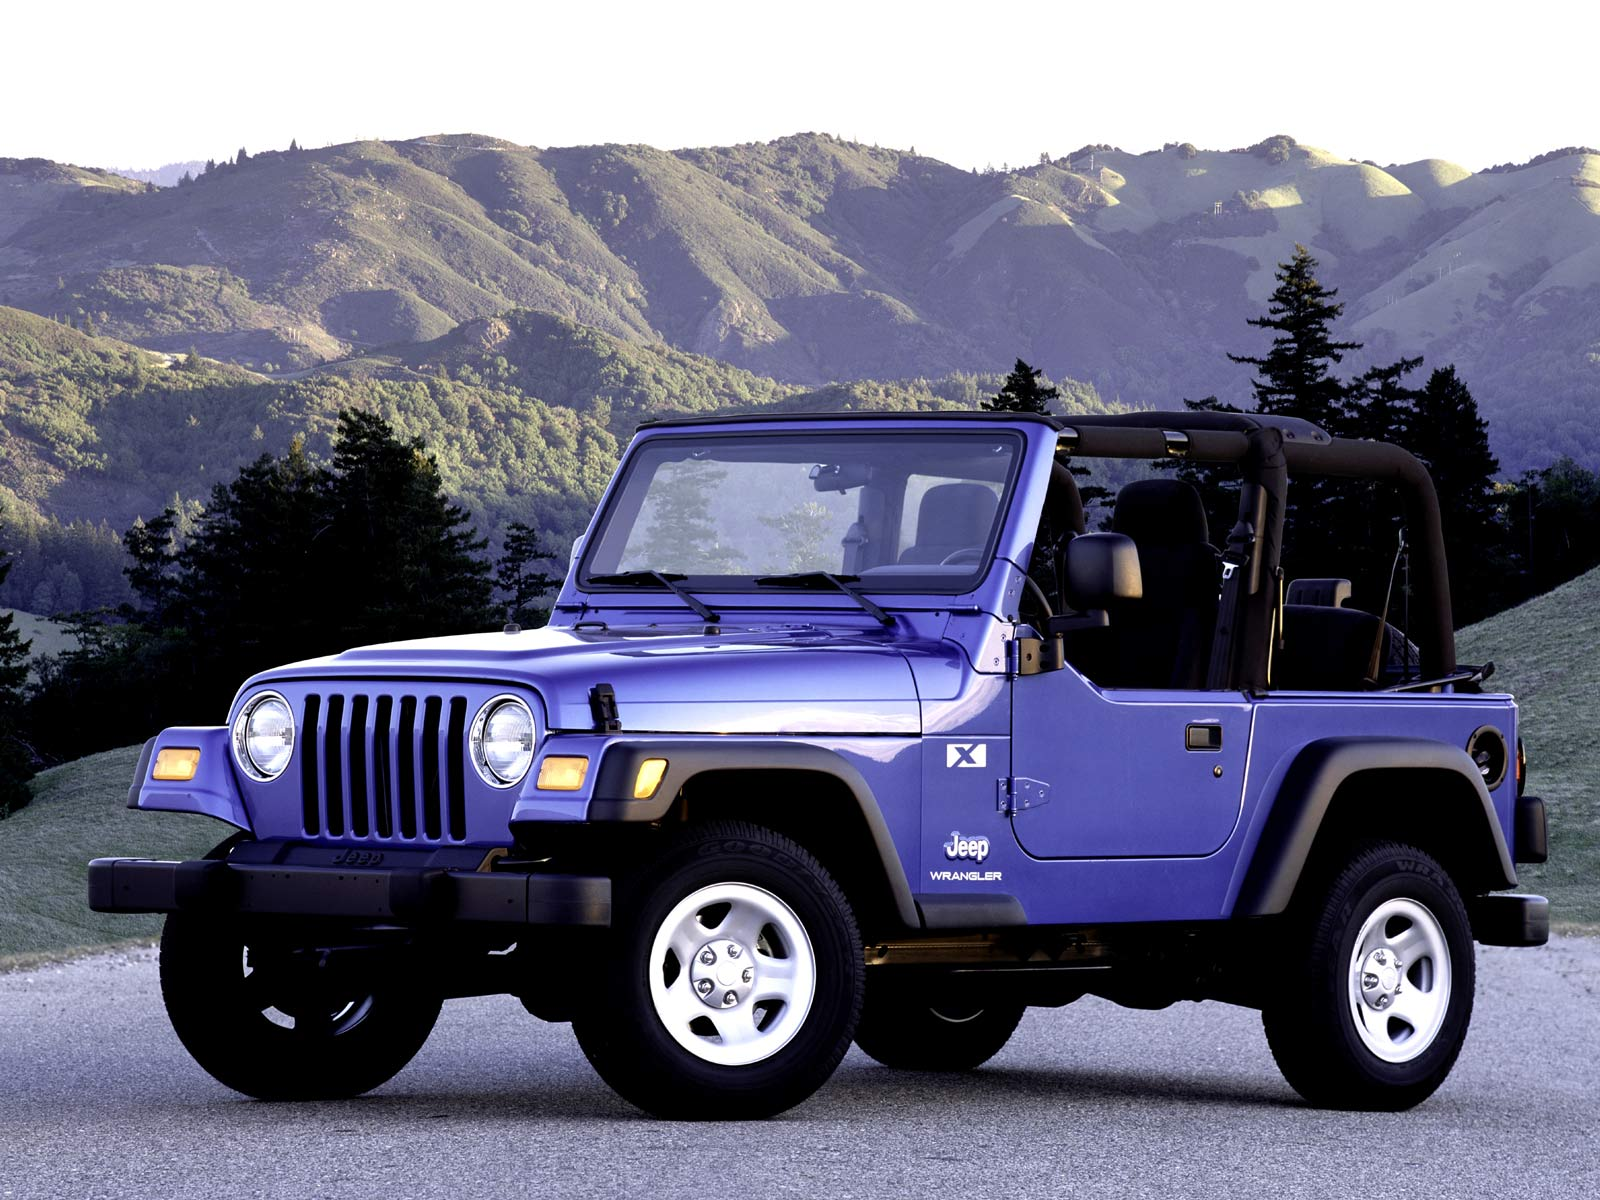 JEEP Background Pics For Desktop 711108